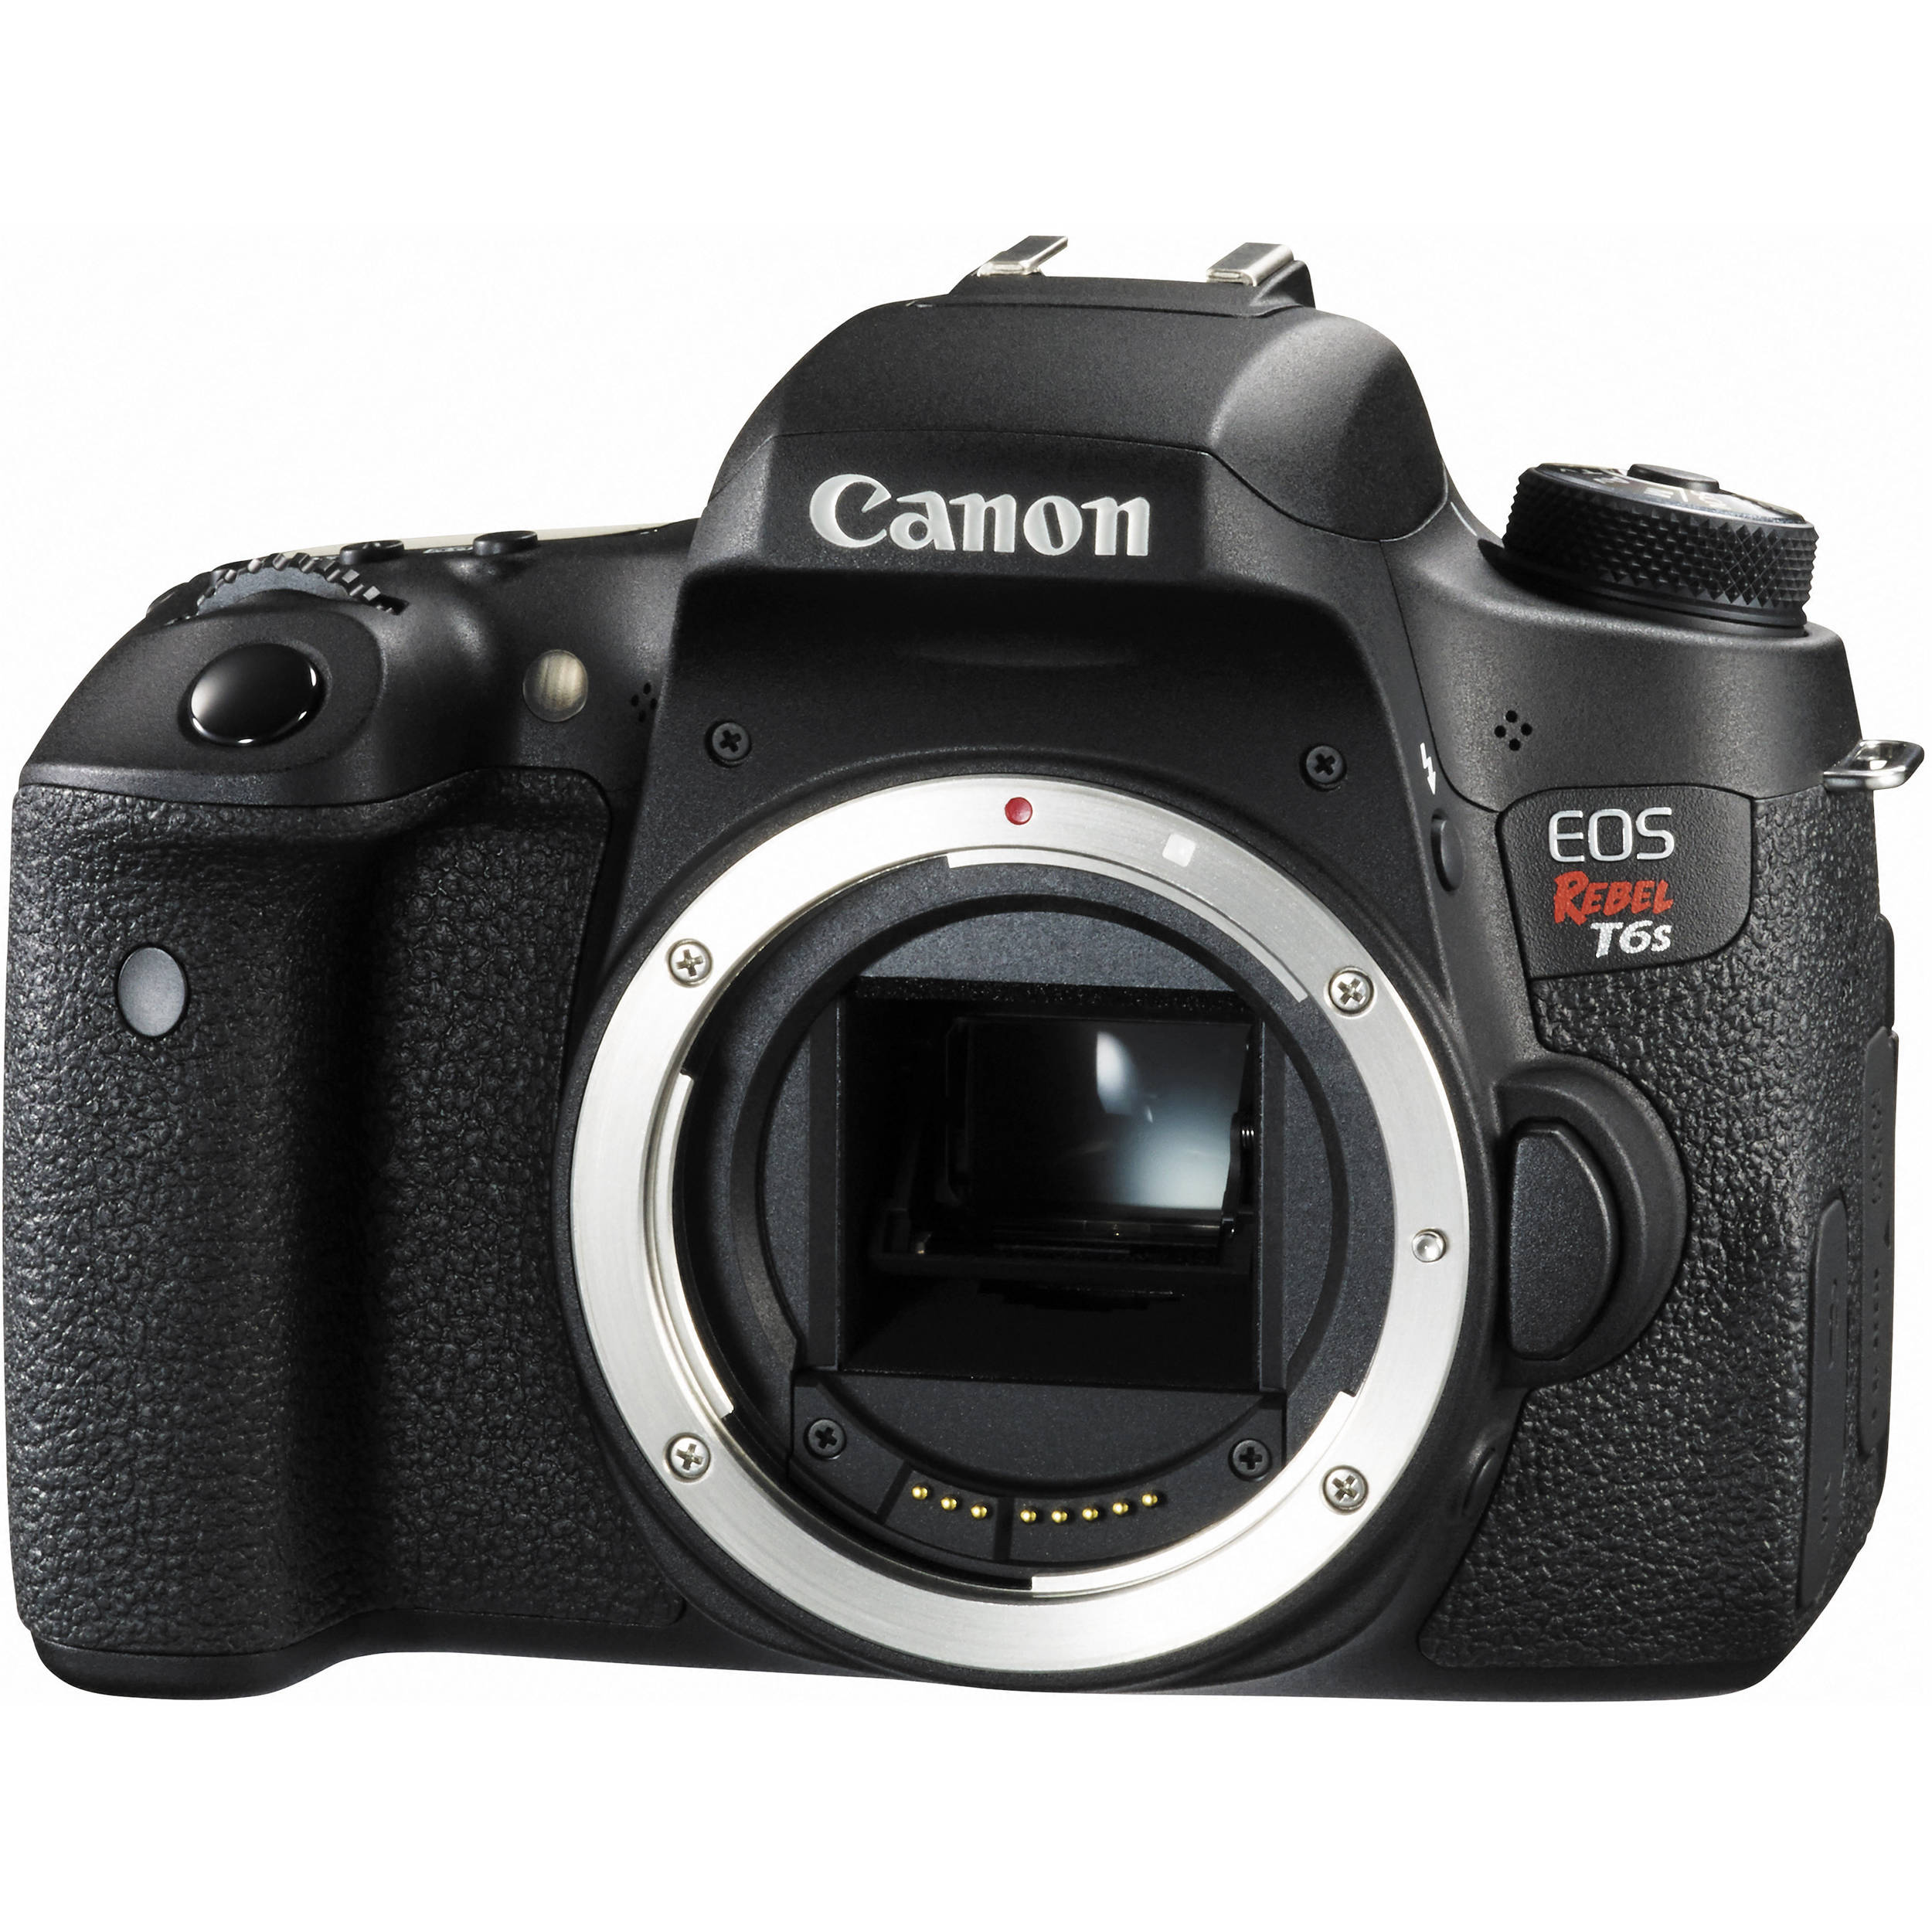 Camera Beginners Dslr Cameras 9 recommended entry level dslr cameras bh explora canon eos rebel t6s camera